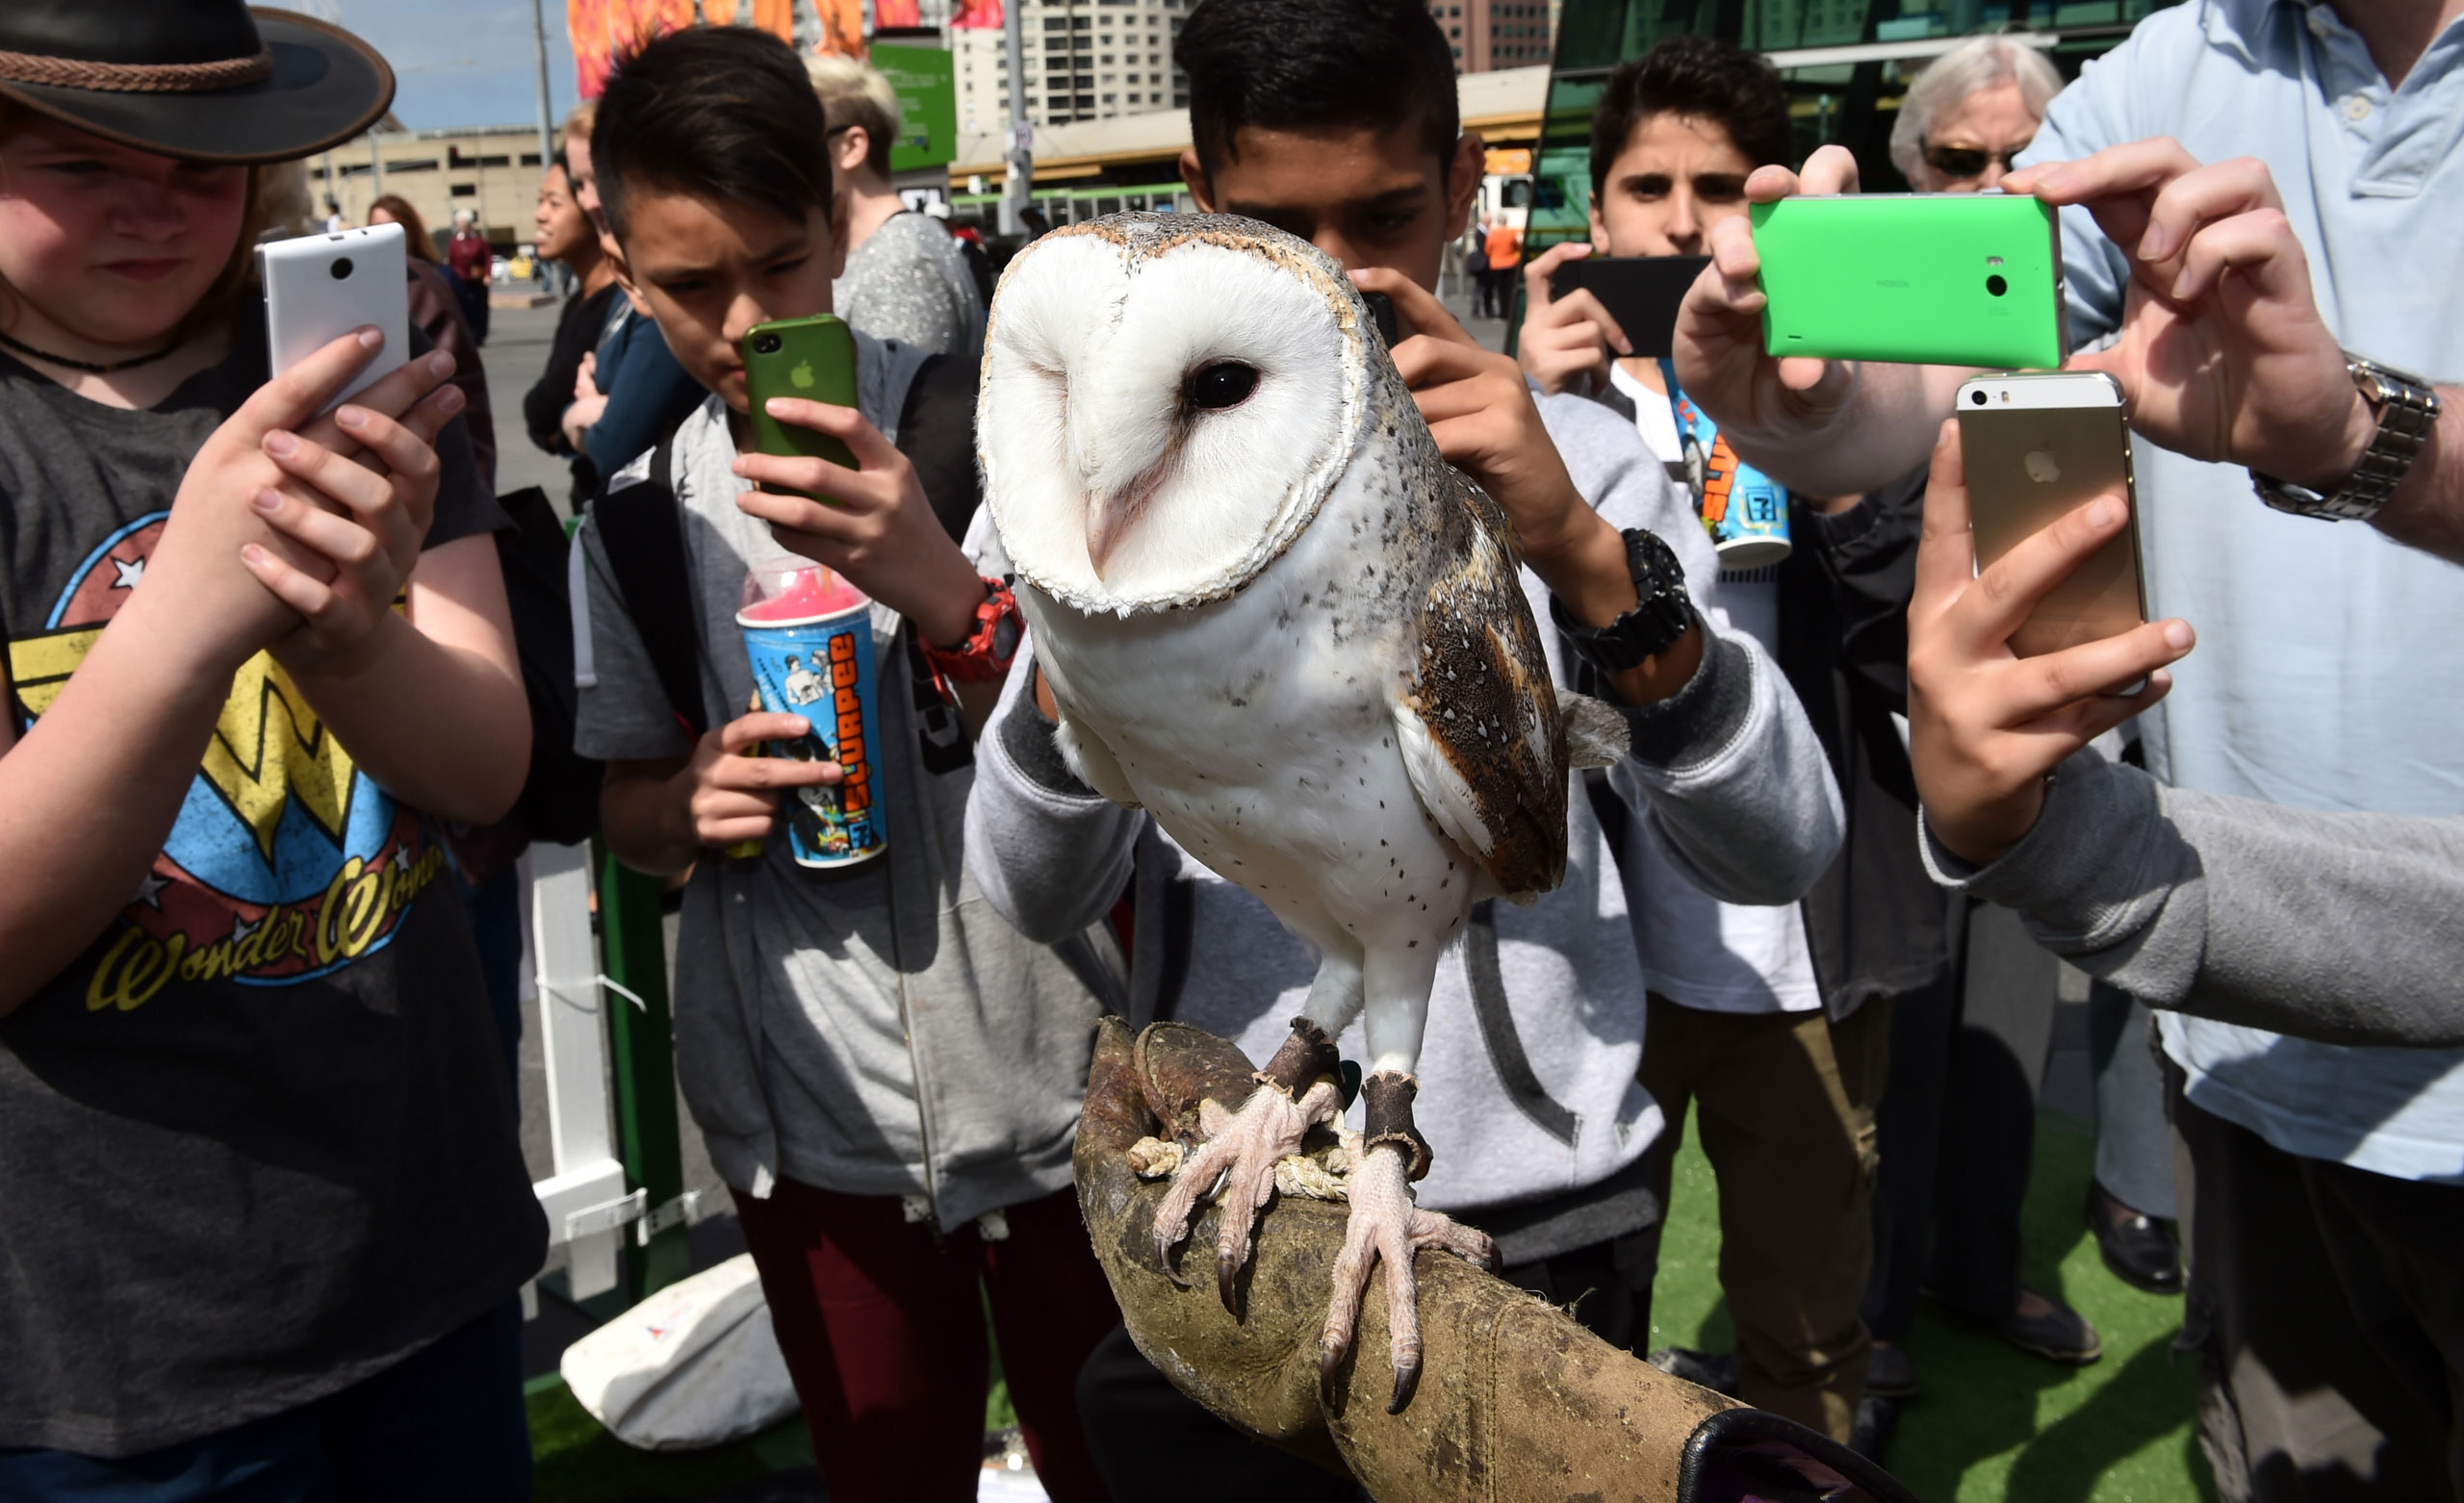 Teenagers take photographs using smartphones of Min Min, a Barn Owl in Melbourne, Australia, Oct. 13, 2015.